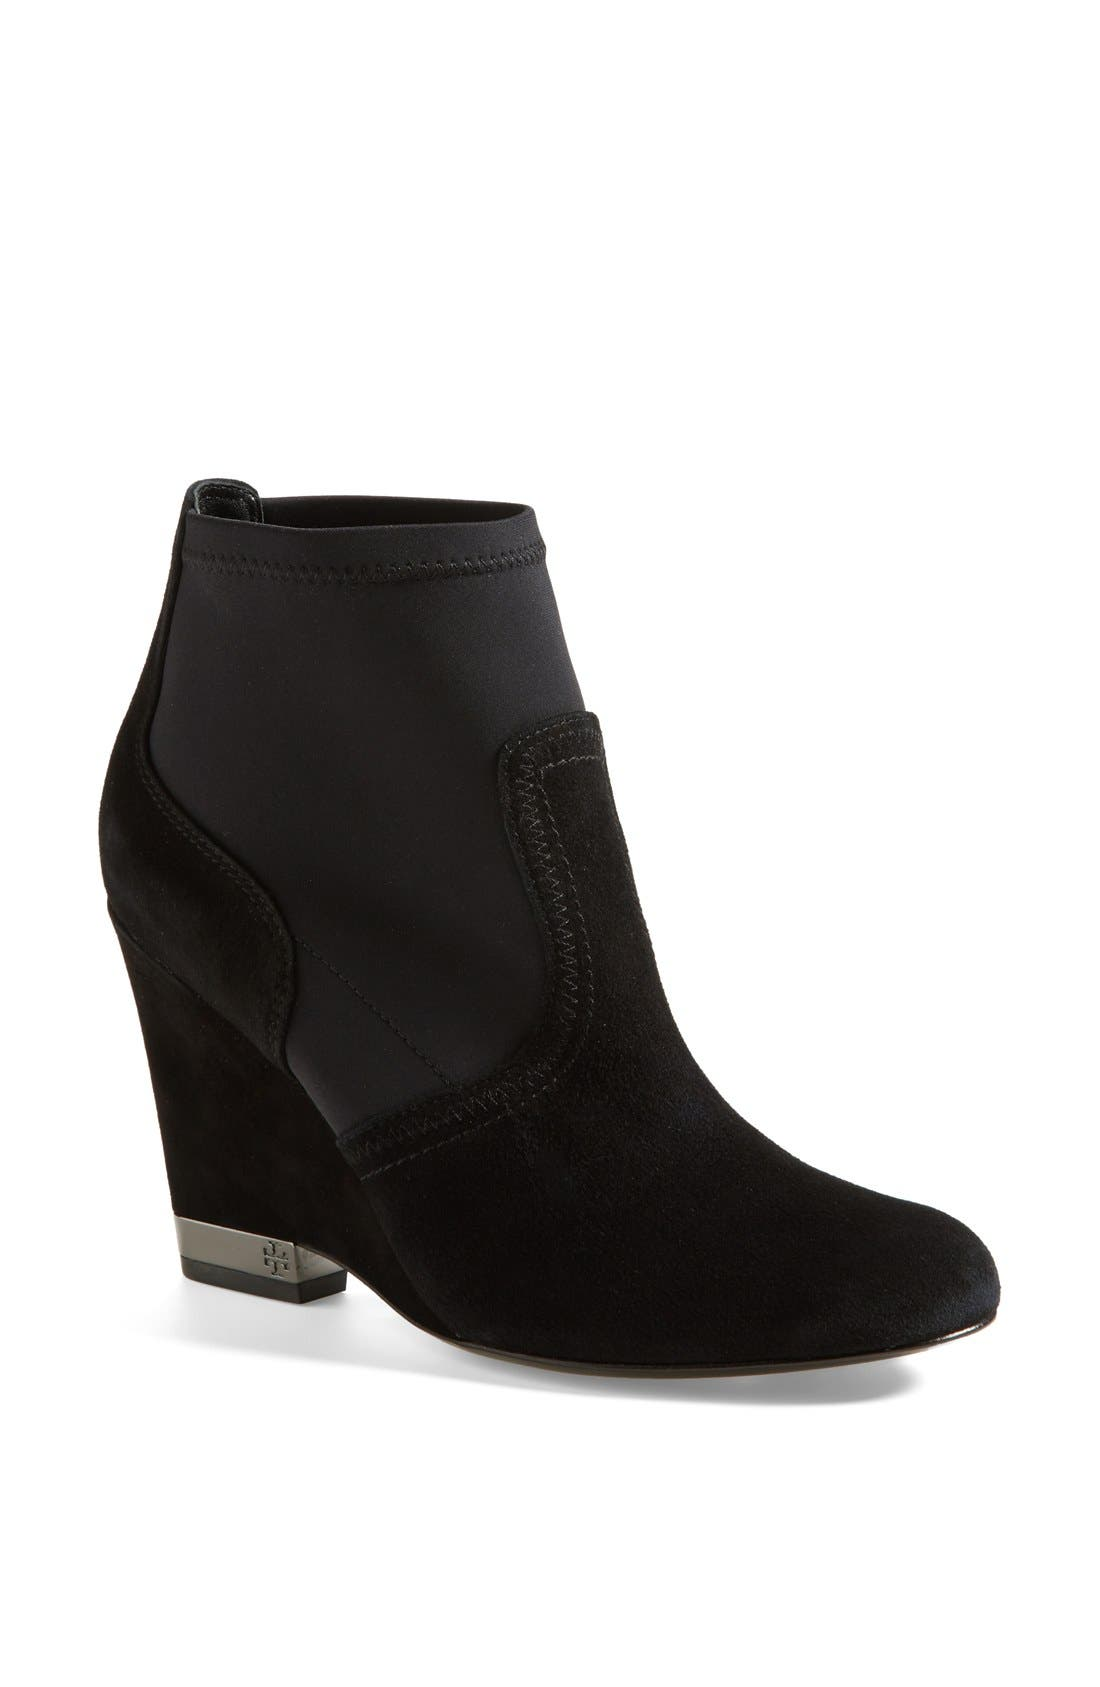 Alternate Image 1 Selected - Tory Burch 'Brenda' Demi Wedge Boot